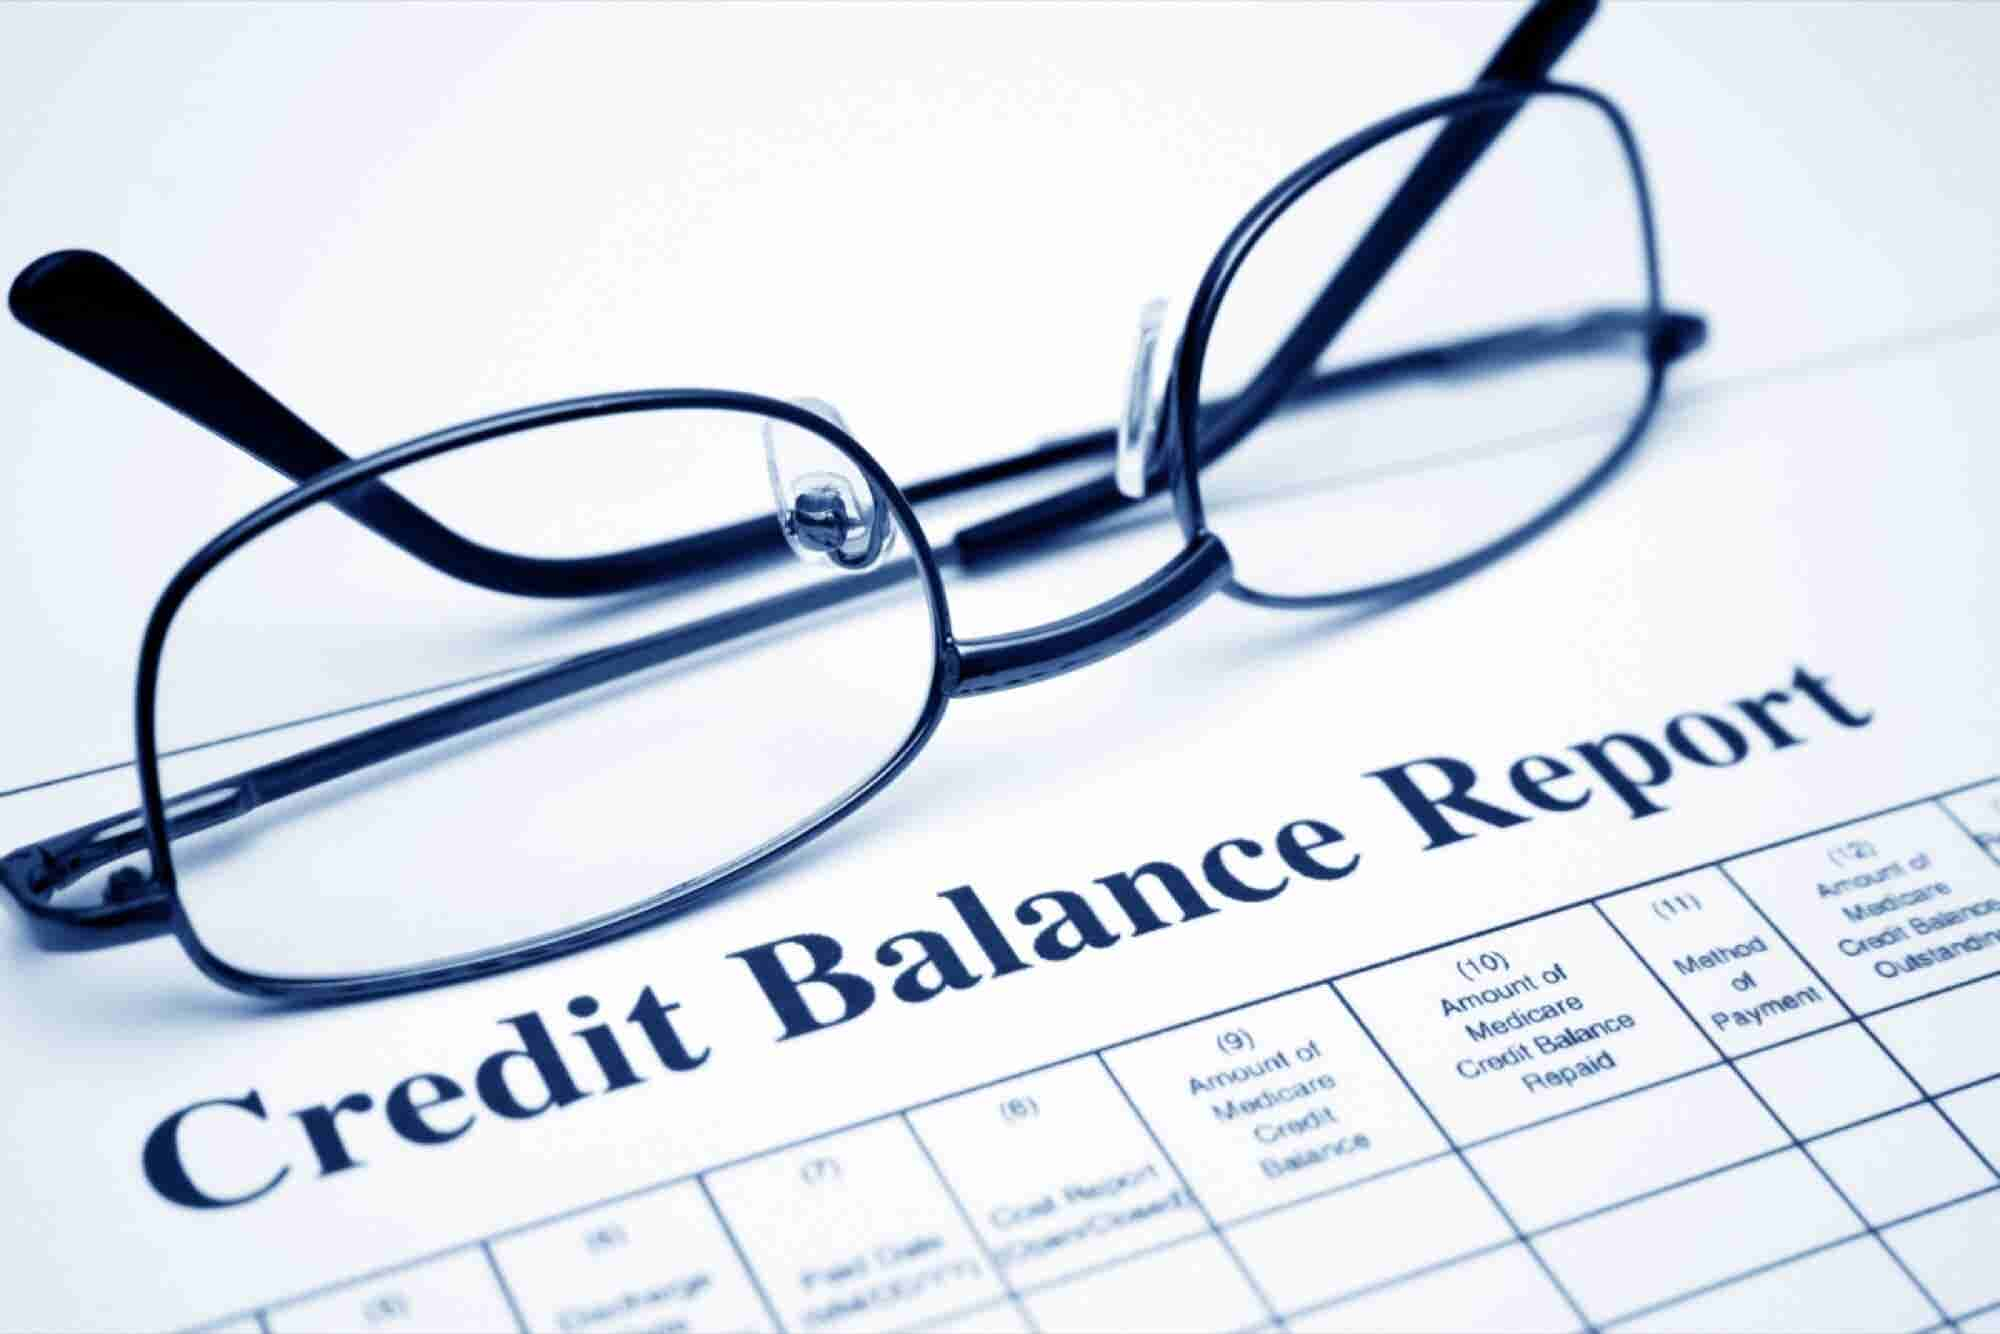 Small Businesses and Big Opportunities- Here's How Credit is Available for All